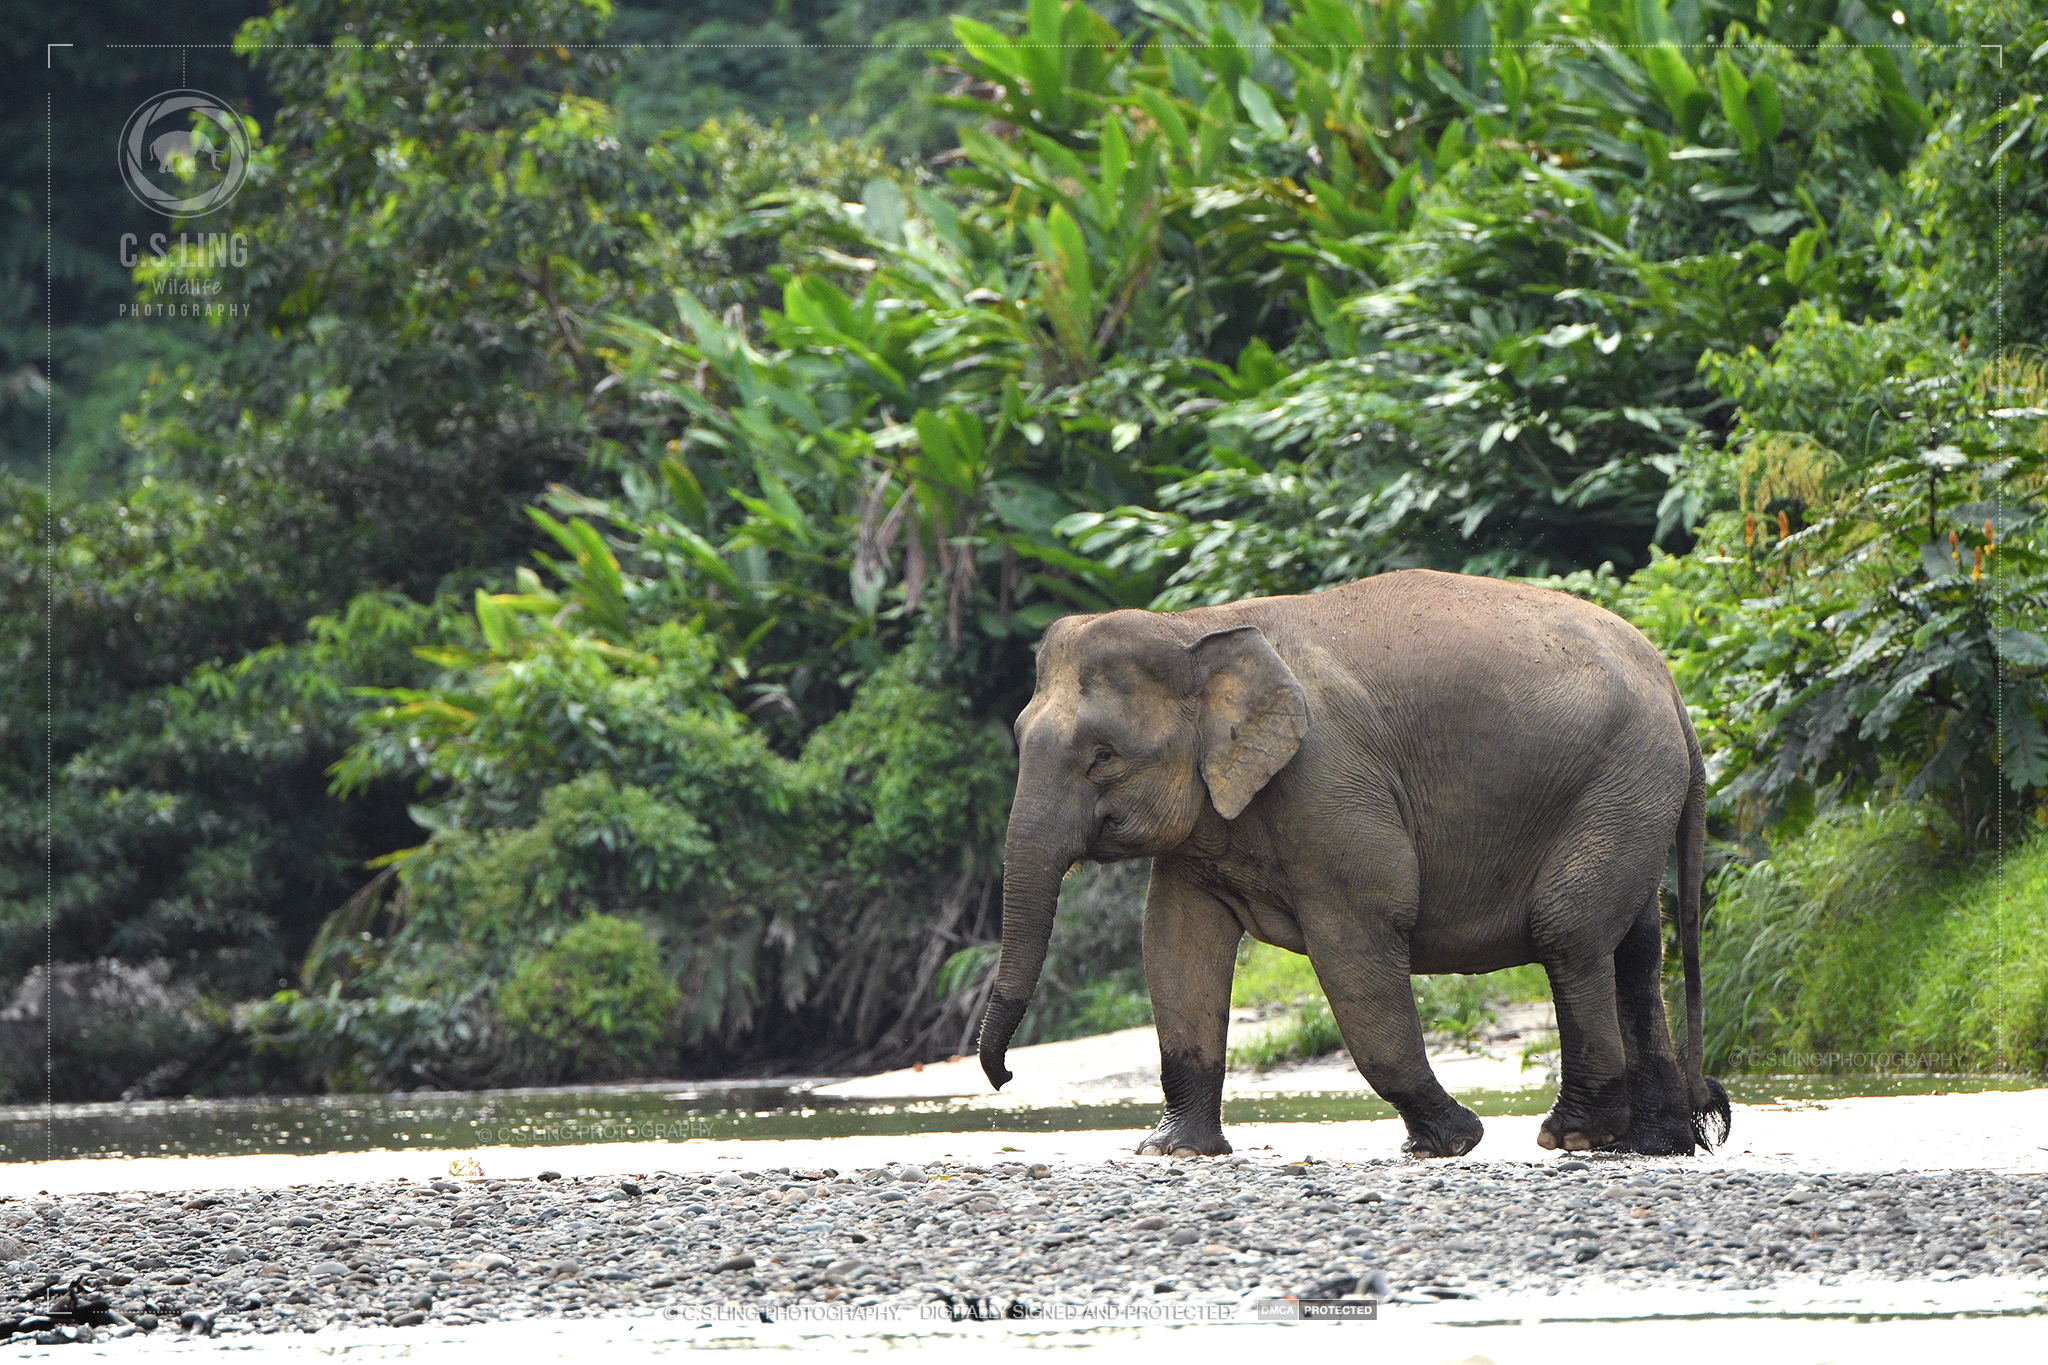 Nikon D500 Borneo Pygmy Elephant Herd Encounter by C.S.Ling